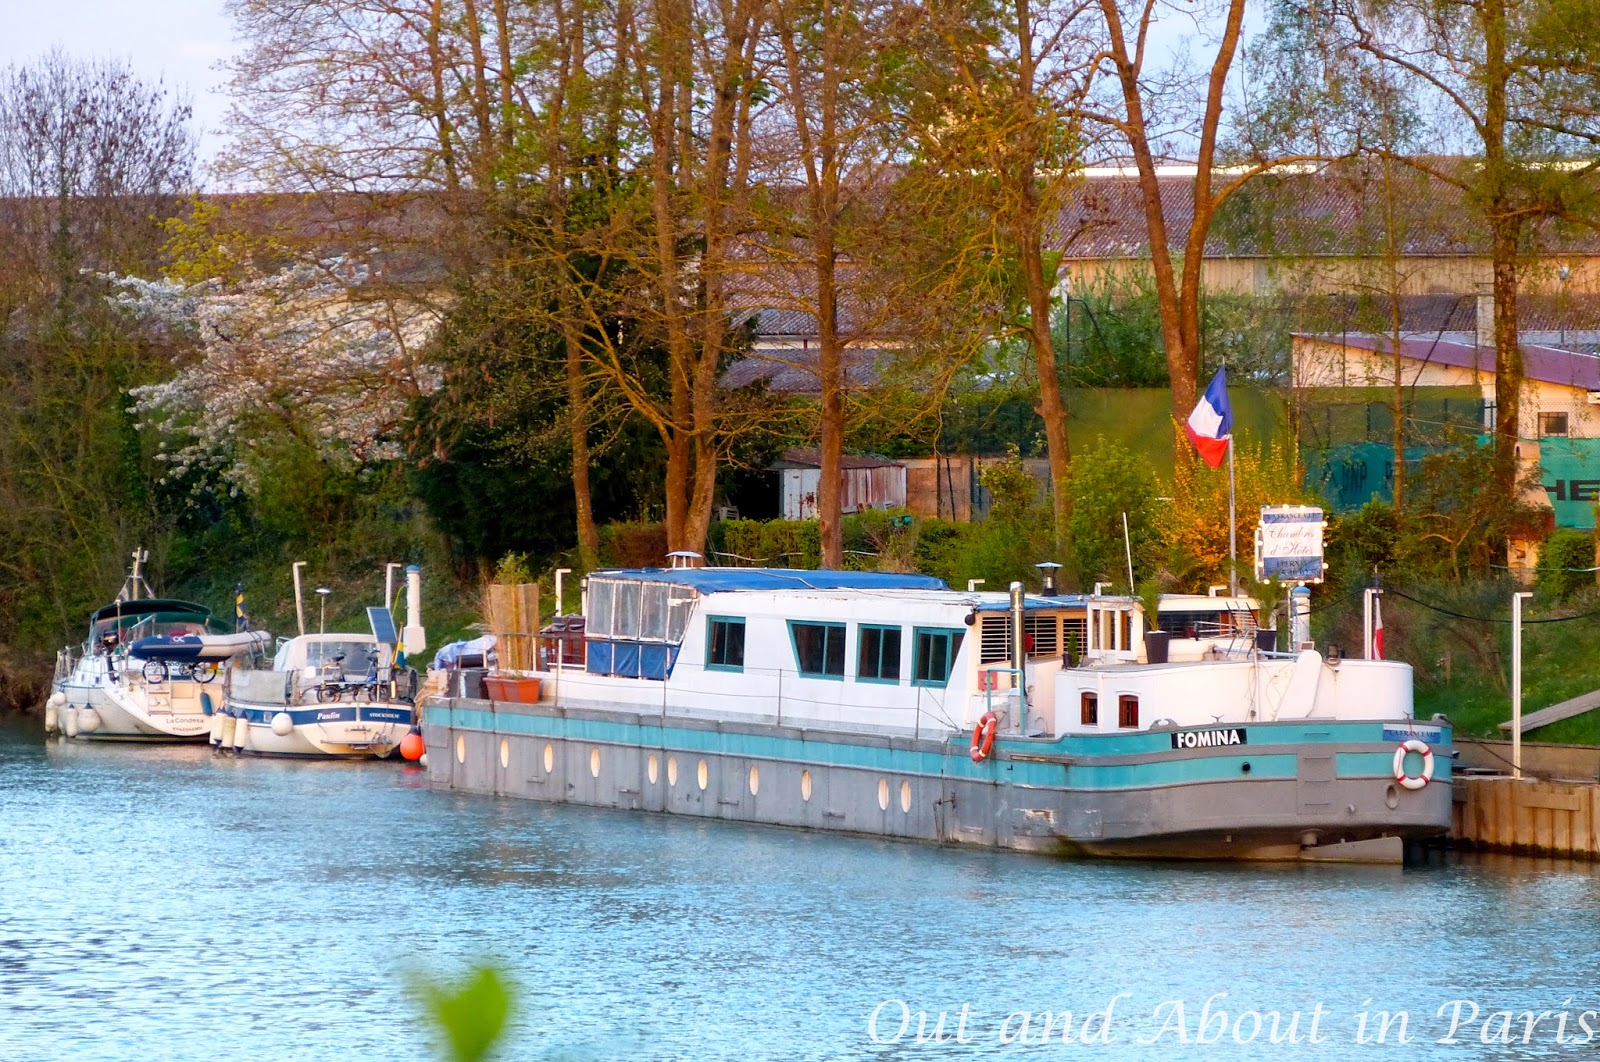 Airbnb Peniche Paris La France V I P Spend The Night Aboard A Péniche River Barge